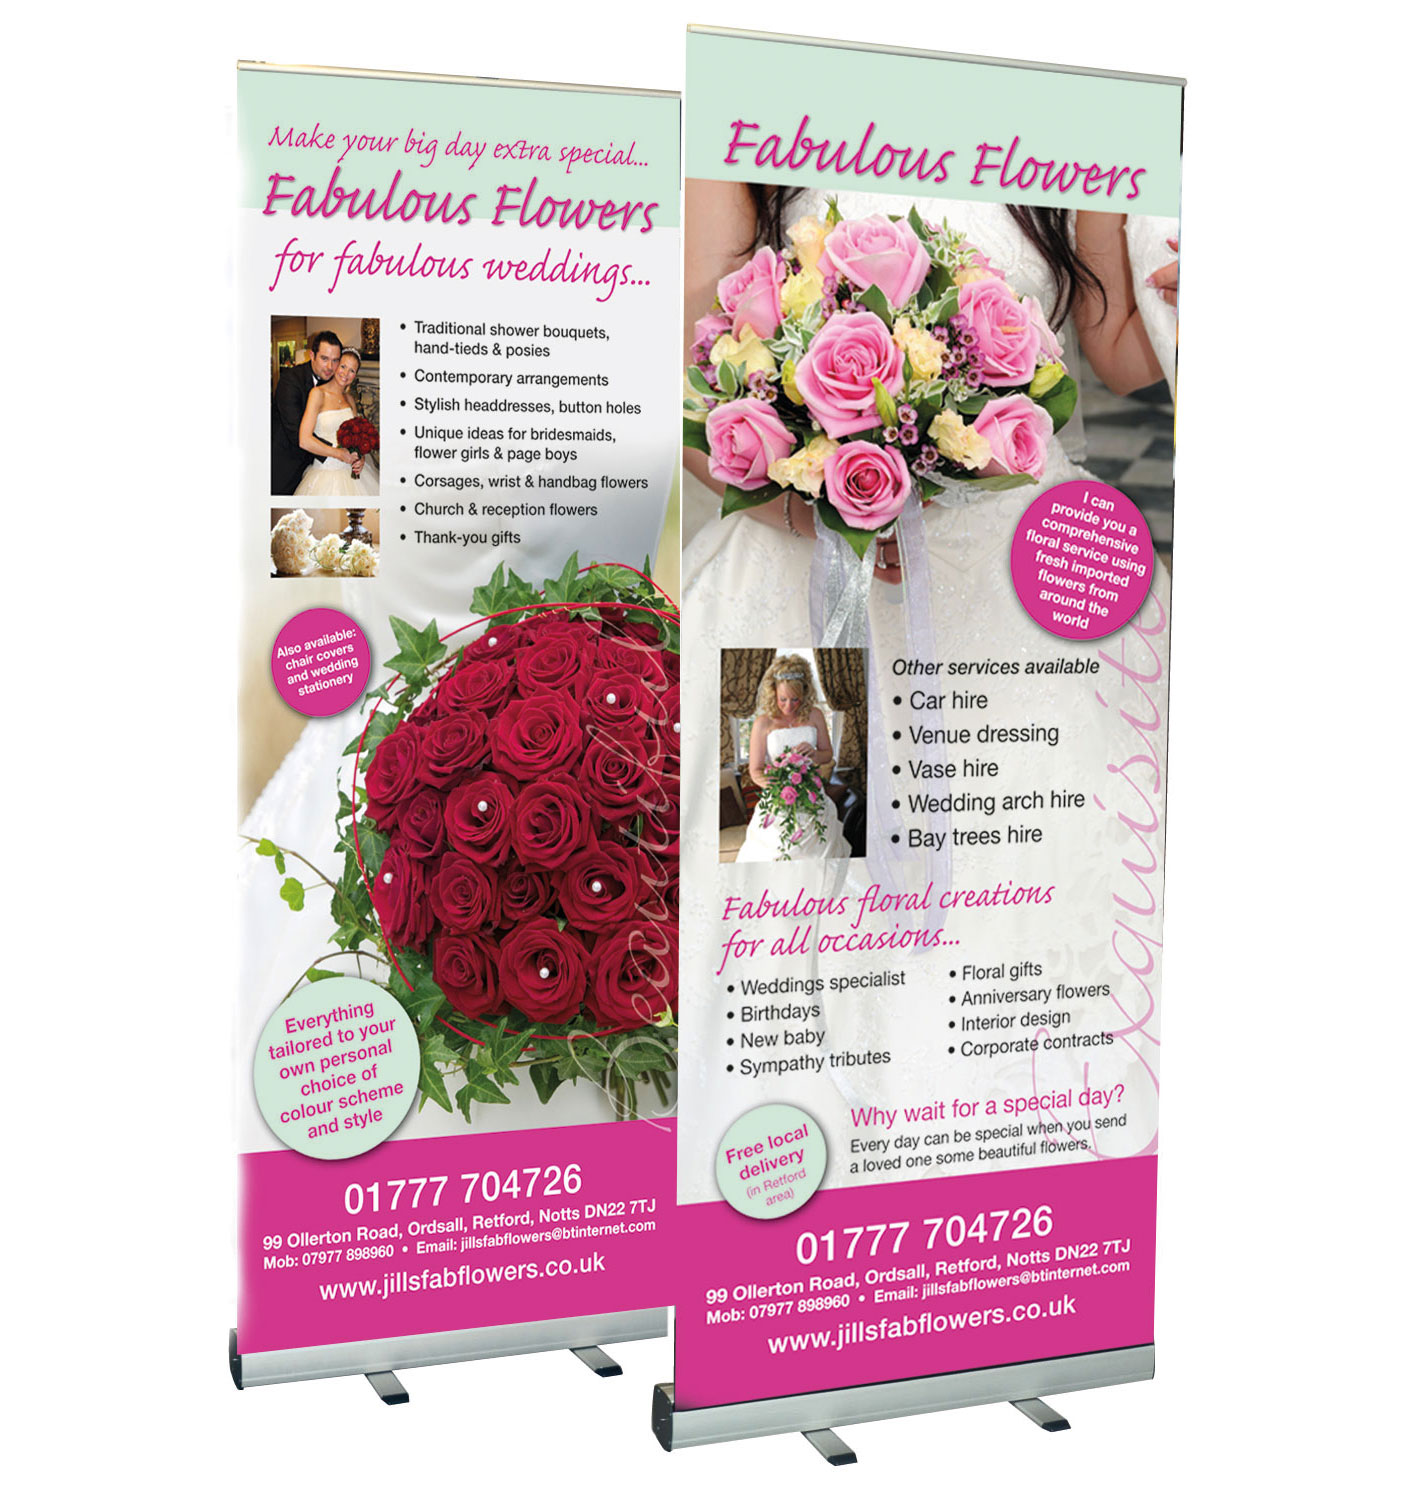 Roll up banners for wedding fayre, exhibition, trade stall etc. designed and printed in Retford